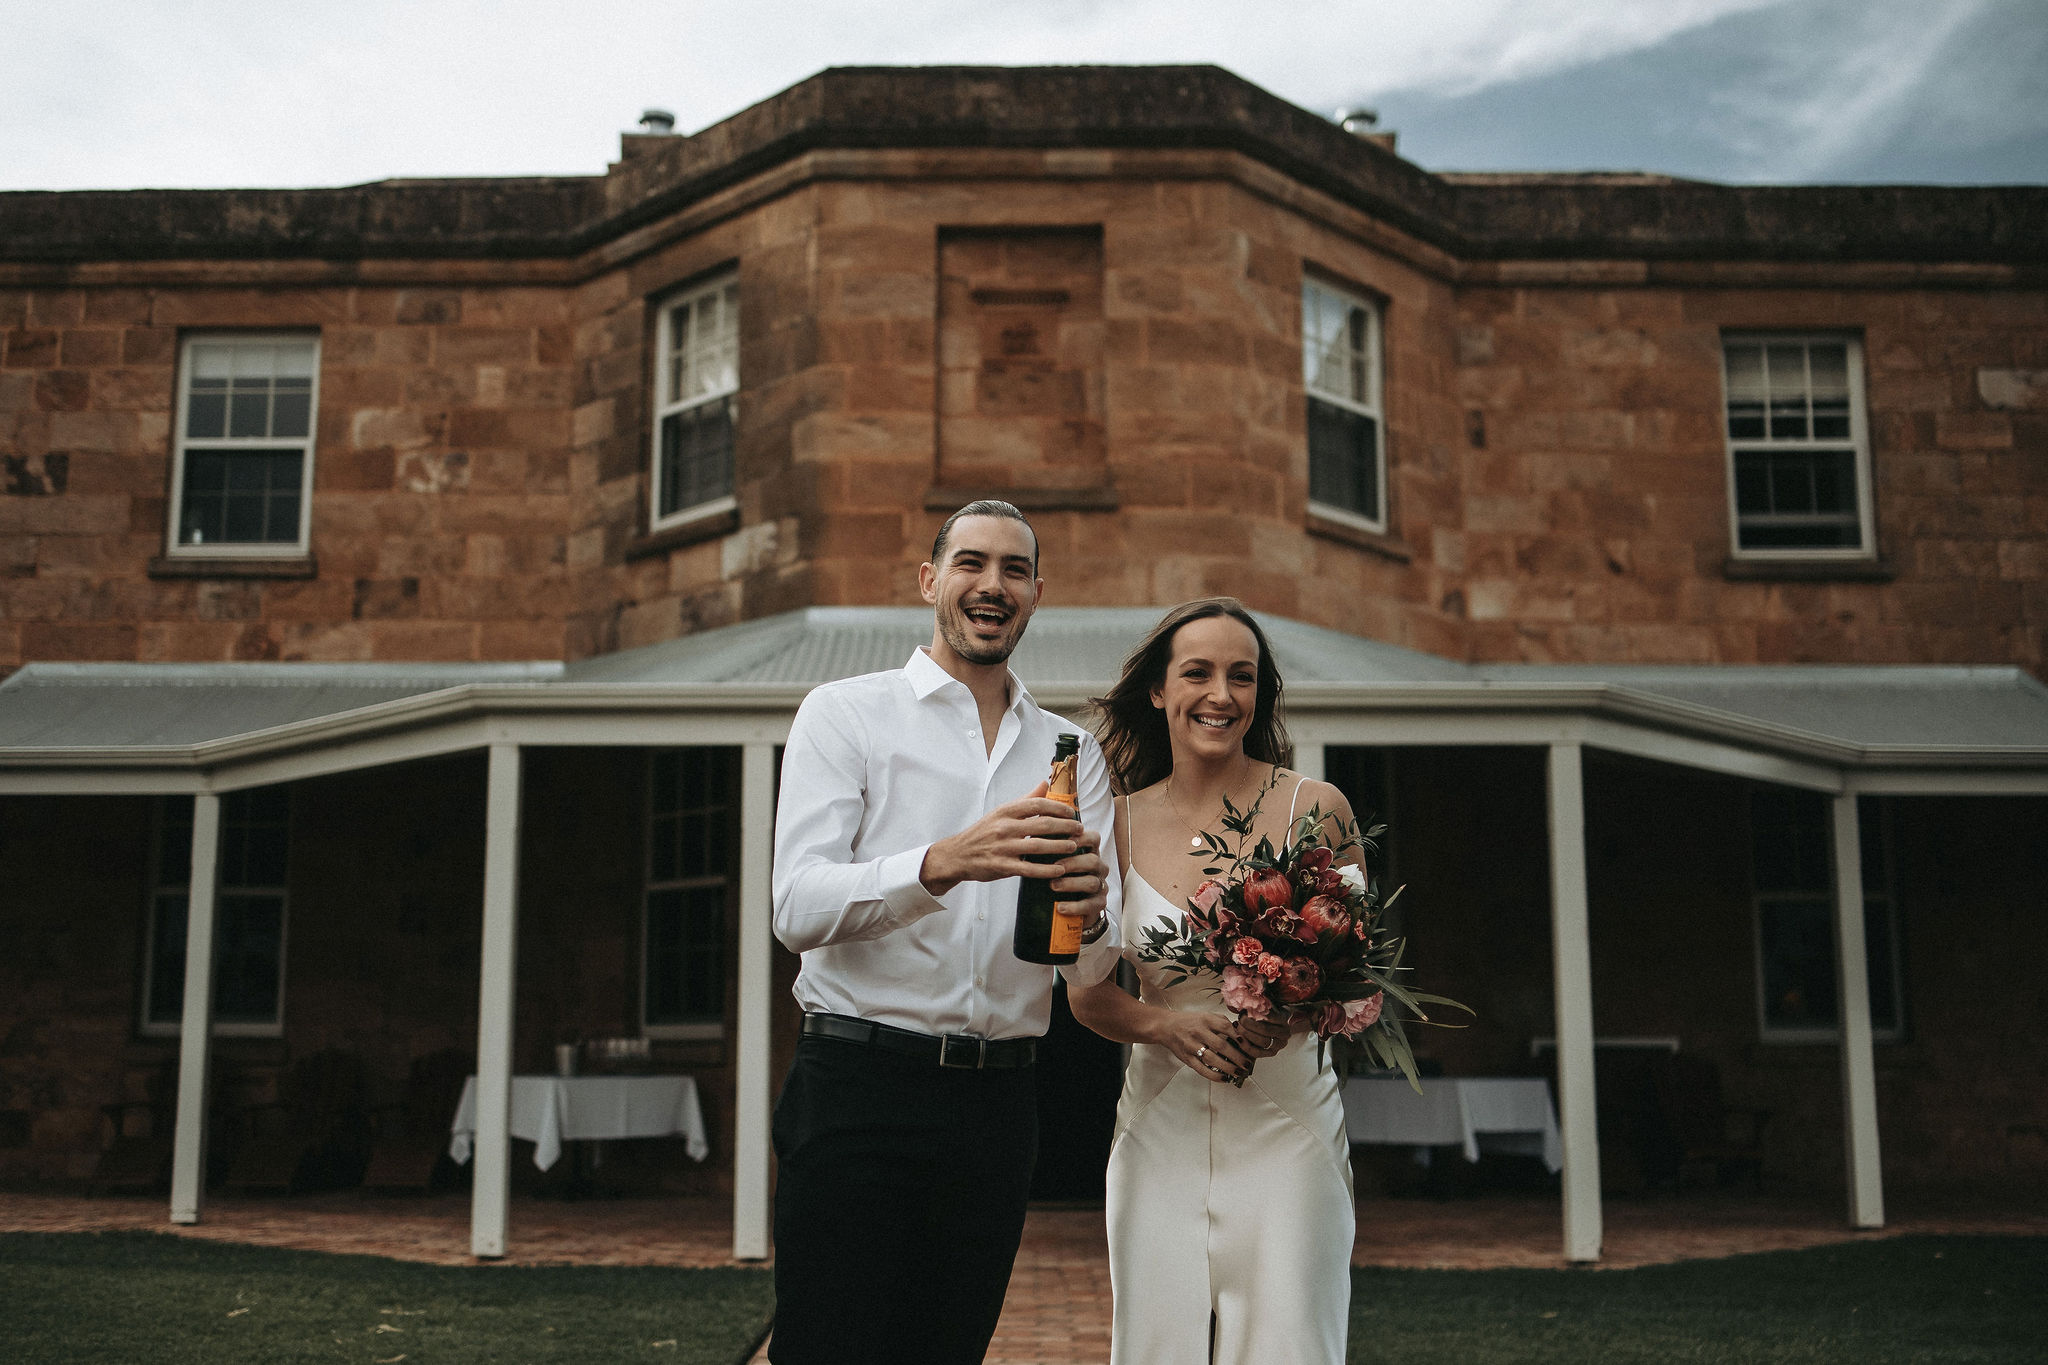 Molly & Chris    Venue: Kingsford Homestead, South Australia   Molly & Chris celebrated their marriage at a special tiny ceremony with their immediate families.   Molly wanted natives included in her bouquet to compliment the venues surroundings, and little baby''s breath crowns for her nieces.